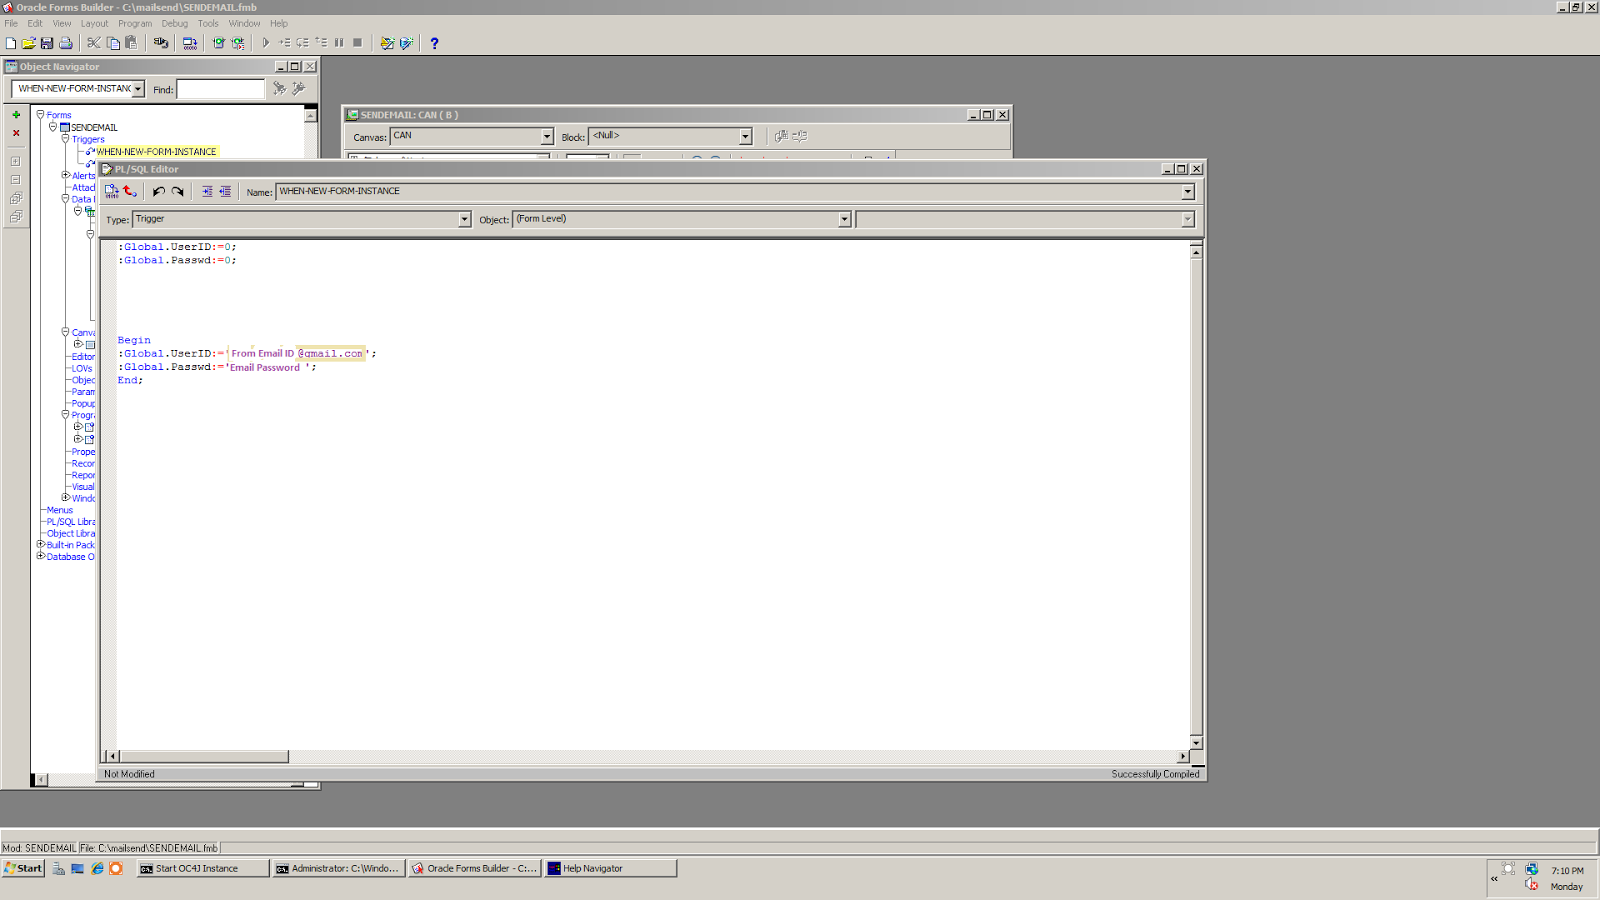 Oracle Forms Builder 11g Download, Oracle Forms 11g Release 2